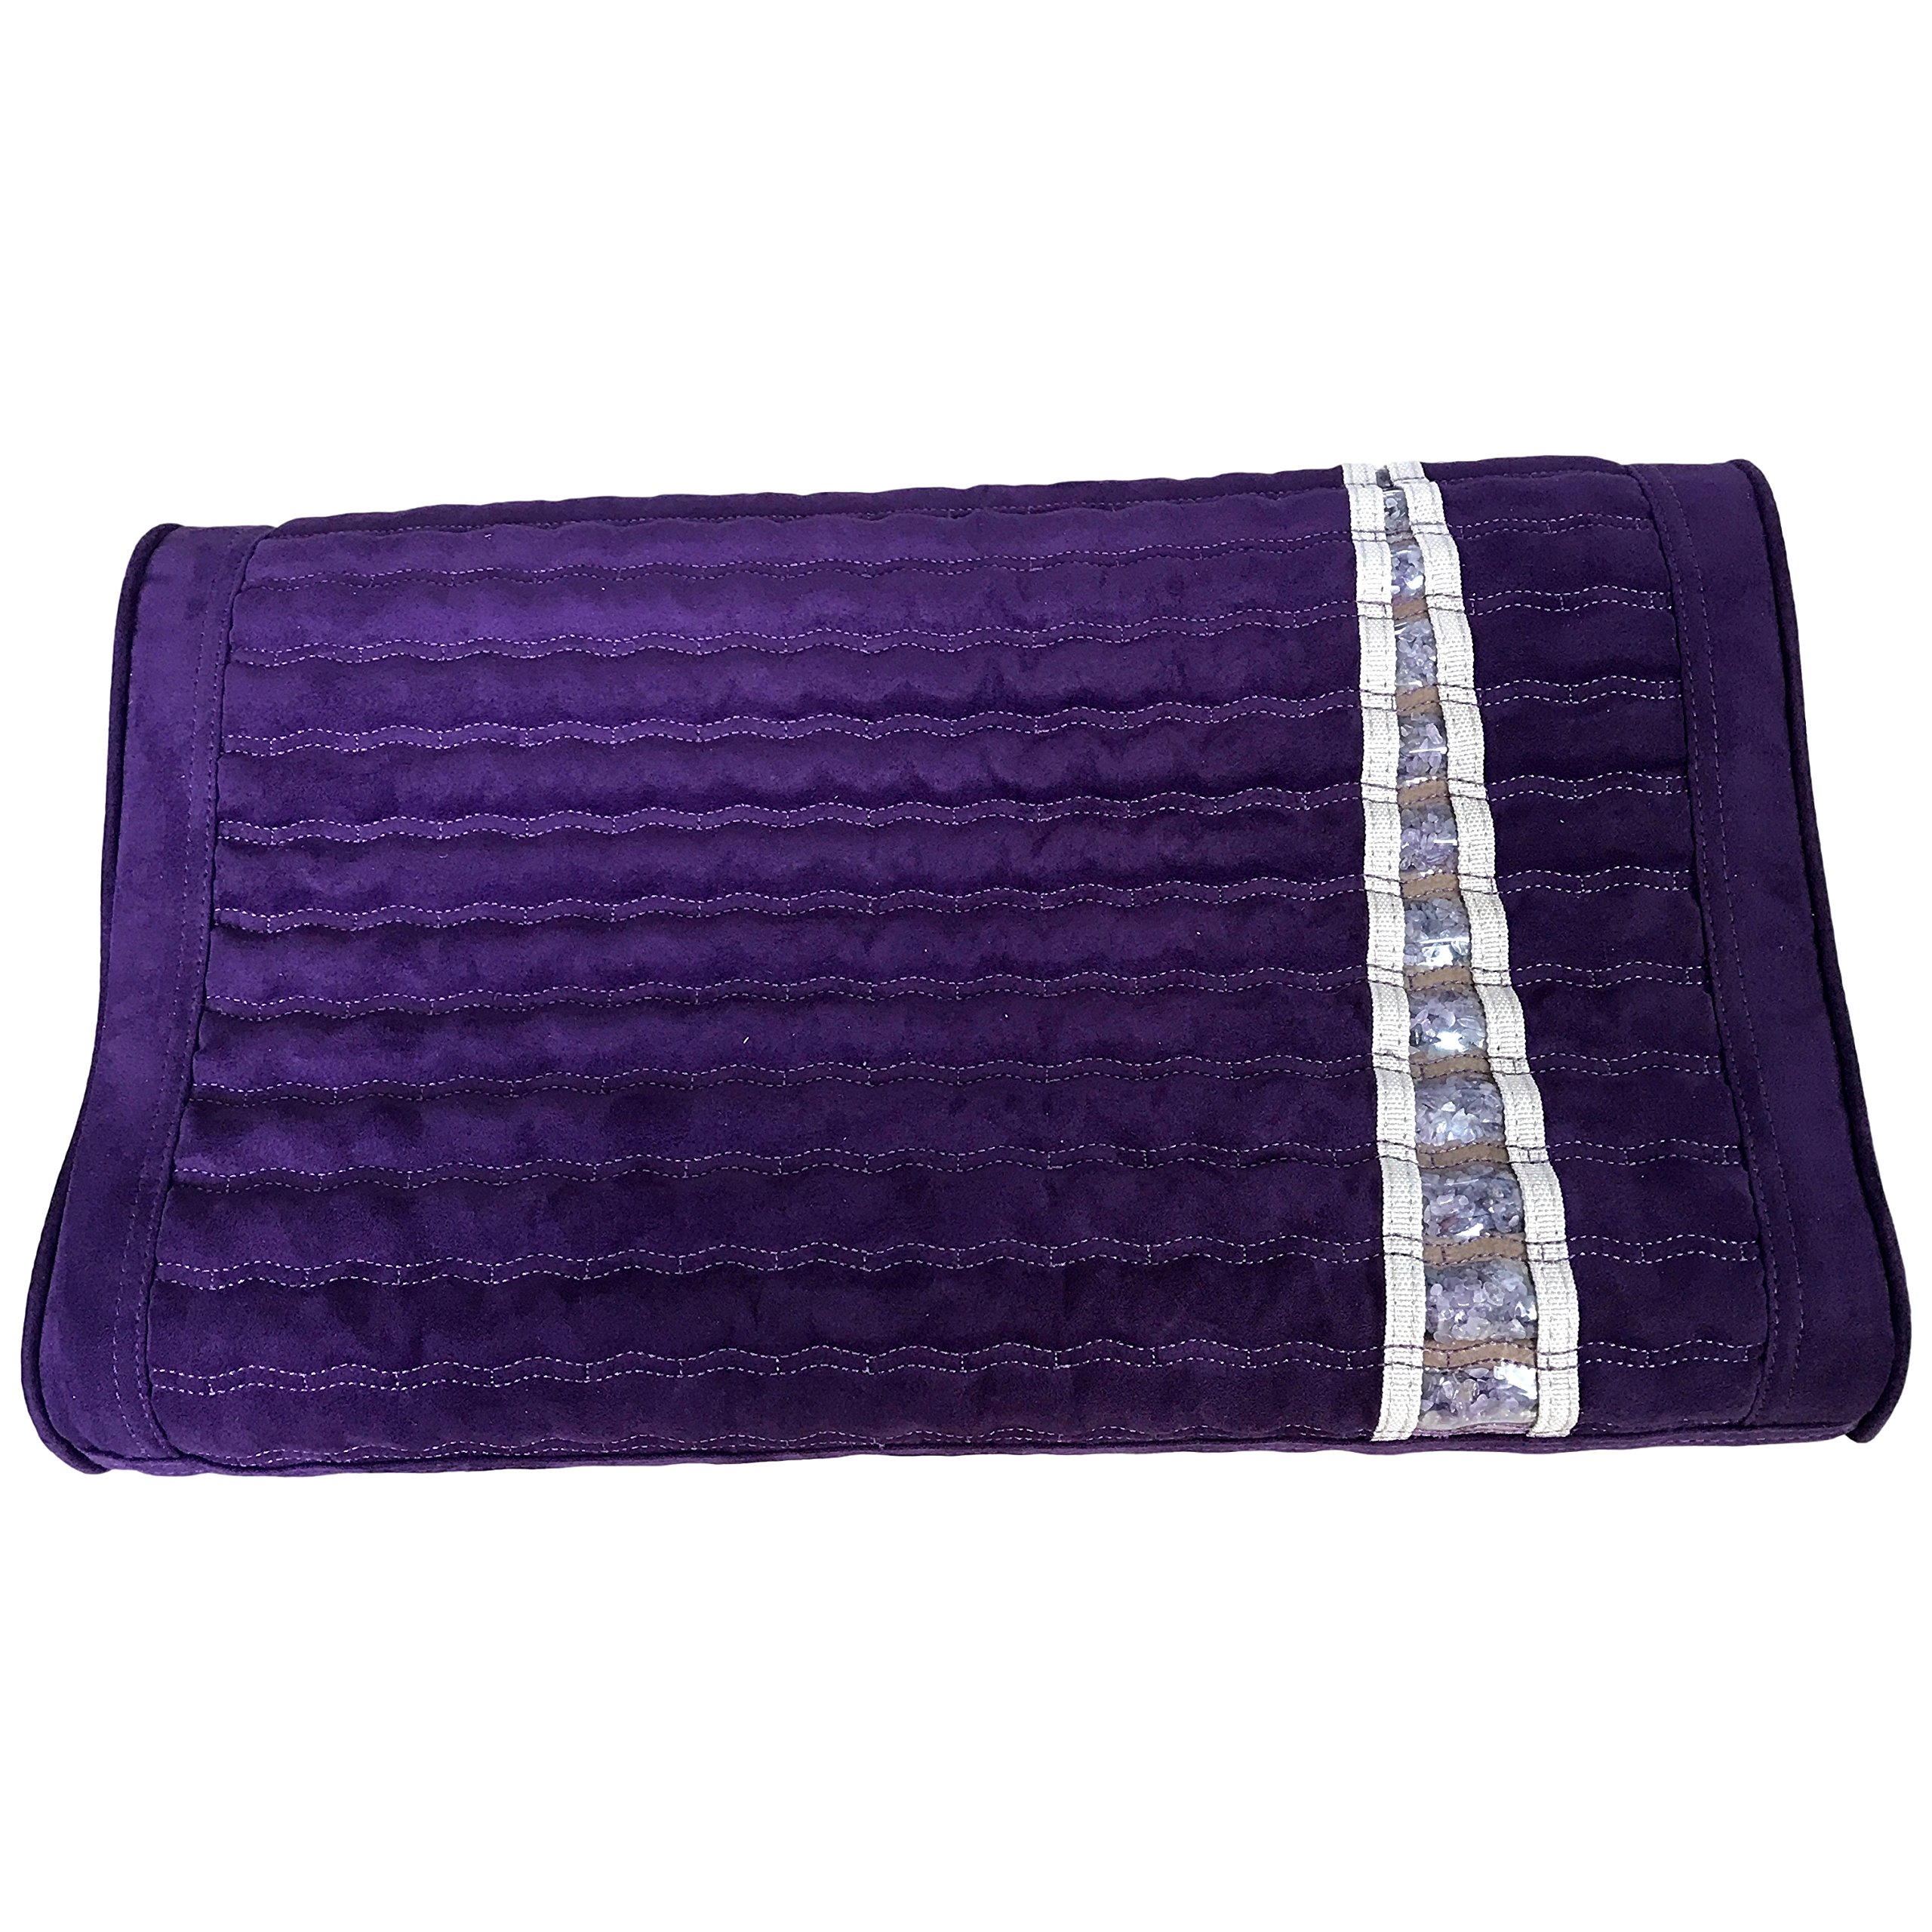 Far Infrared Amethyst Mat Pillow - Emits Negative Ions - Crystal FIR Rays - 100% Natural Amethyst Gemstones - Non Electric - For Headache and Stress Relief - To Sleep Better - GENTLE support - Purple by MediCrystal (Image #10)